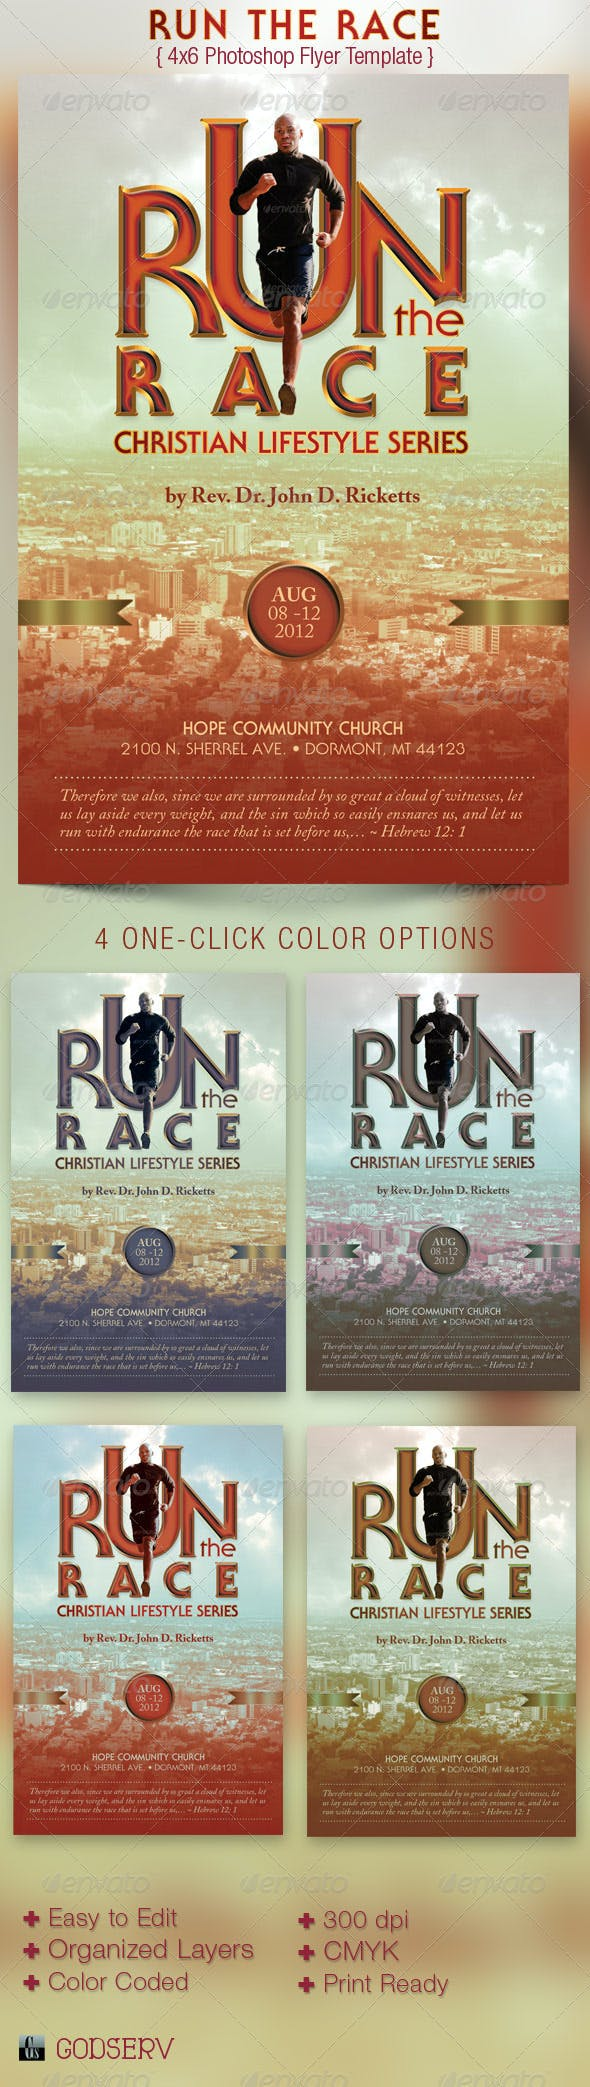 run race church flyer template by godserv graphicriver